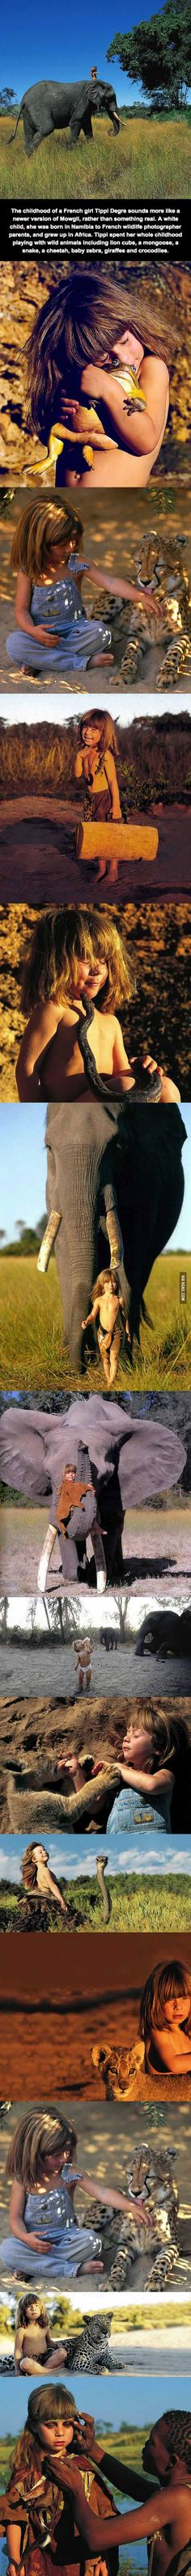 Growing up in Namibia, Africa << Awesome Childhood .. jealous